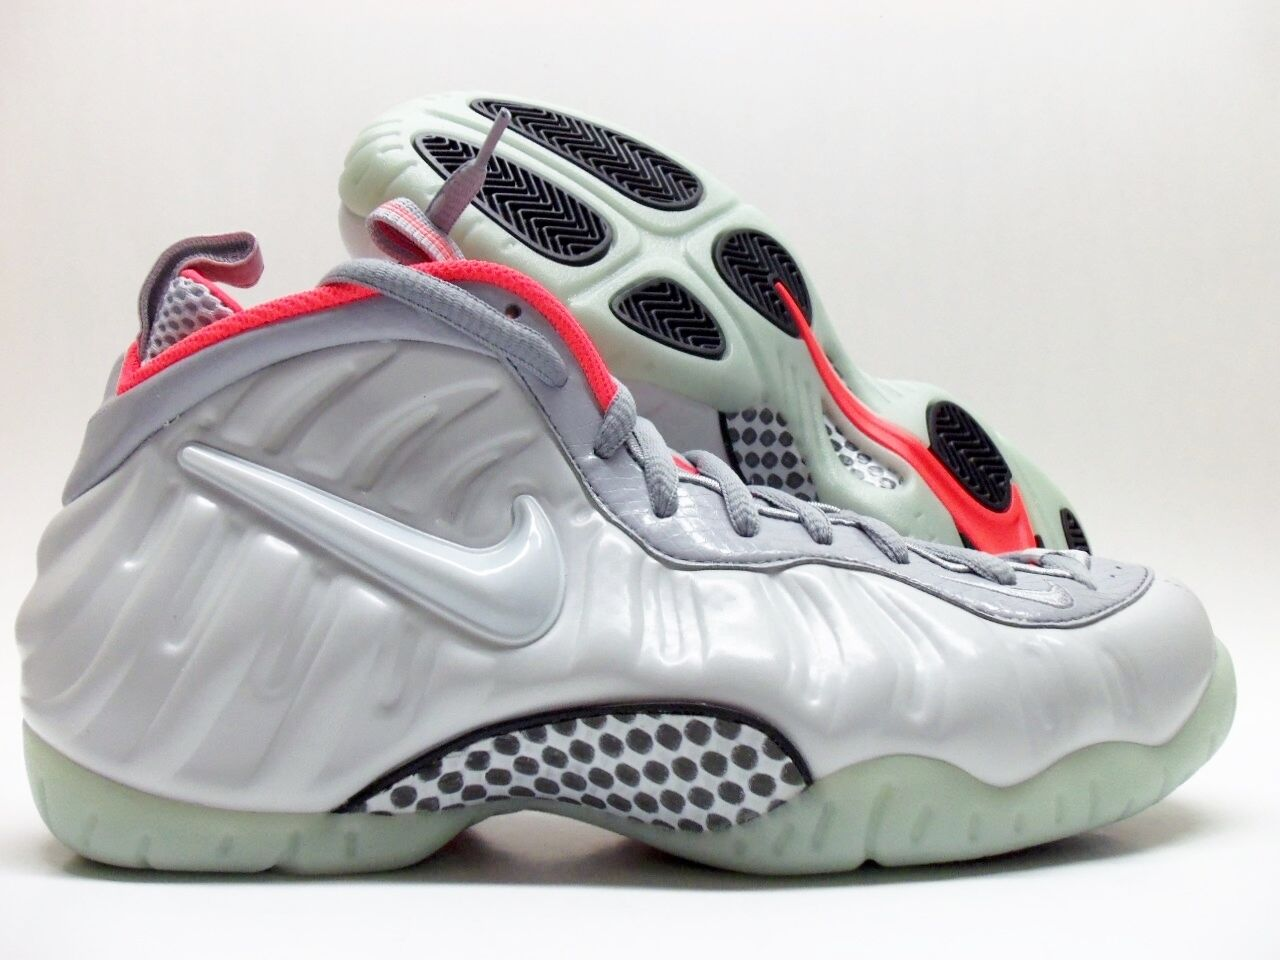 NIKE AIR FOAMPOSITE PRO PRM PREMIUM PURE PLATINUM/GREY Price reduction best-selling model of the brand